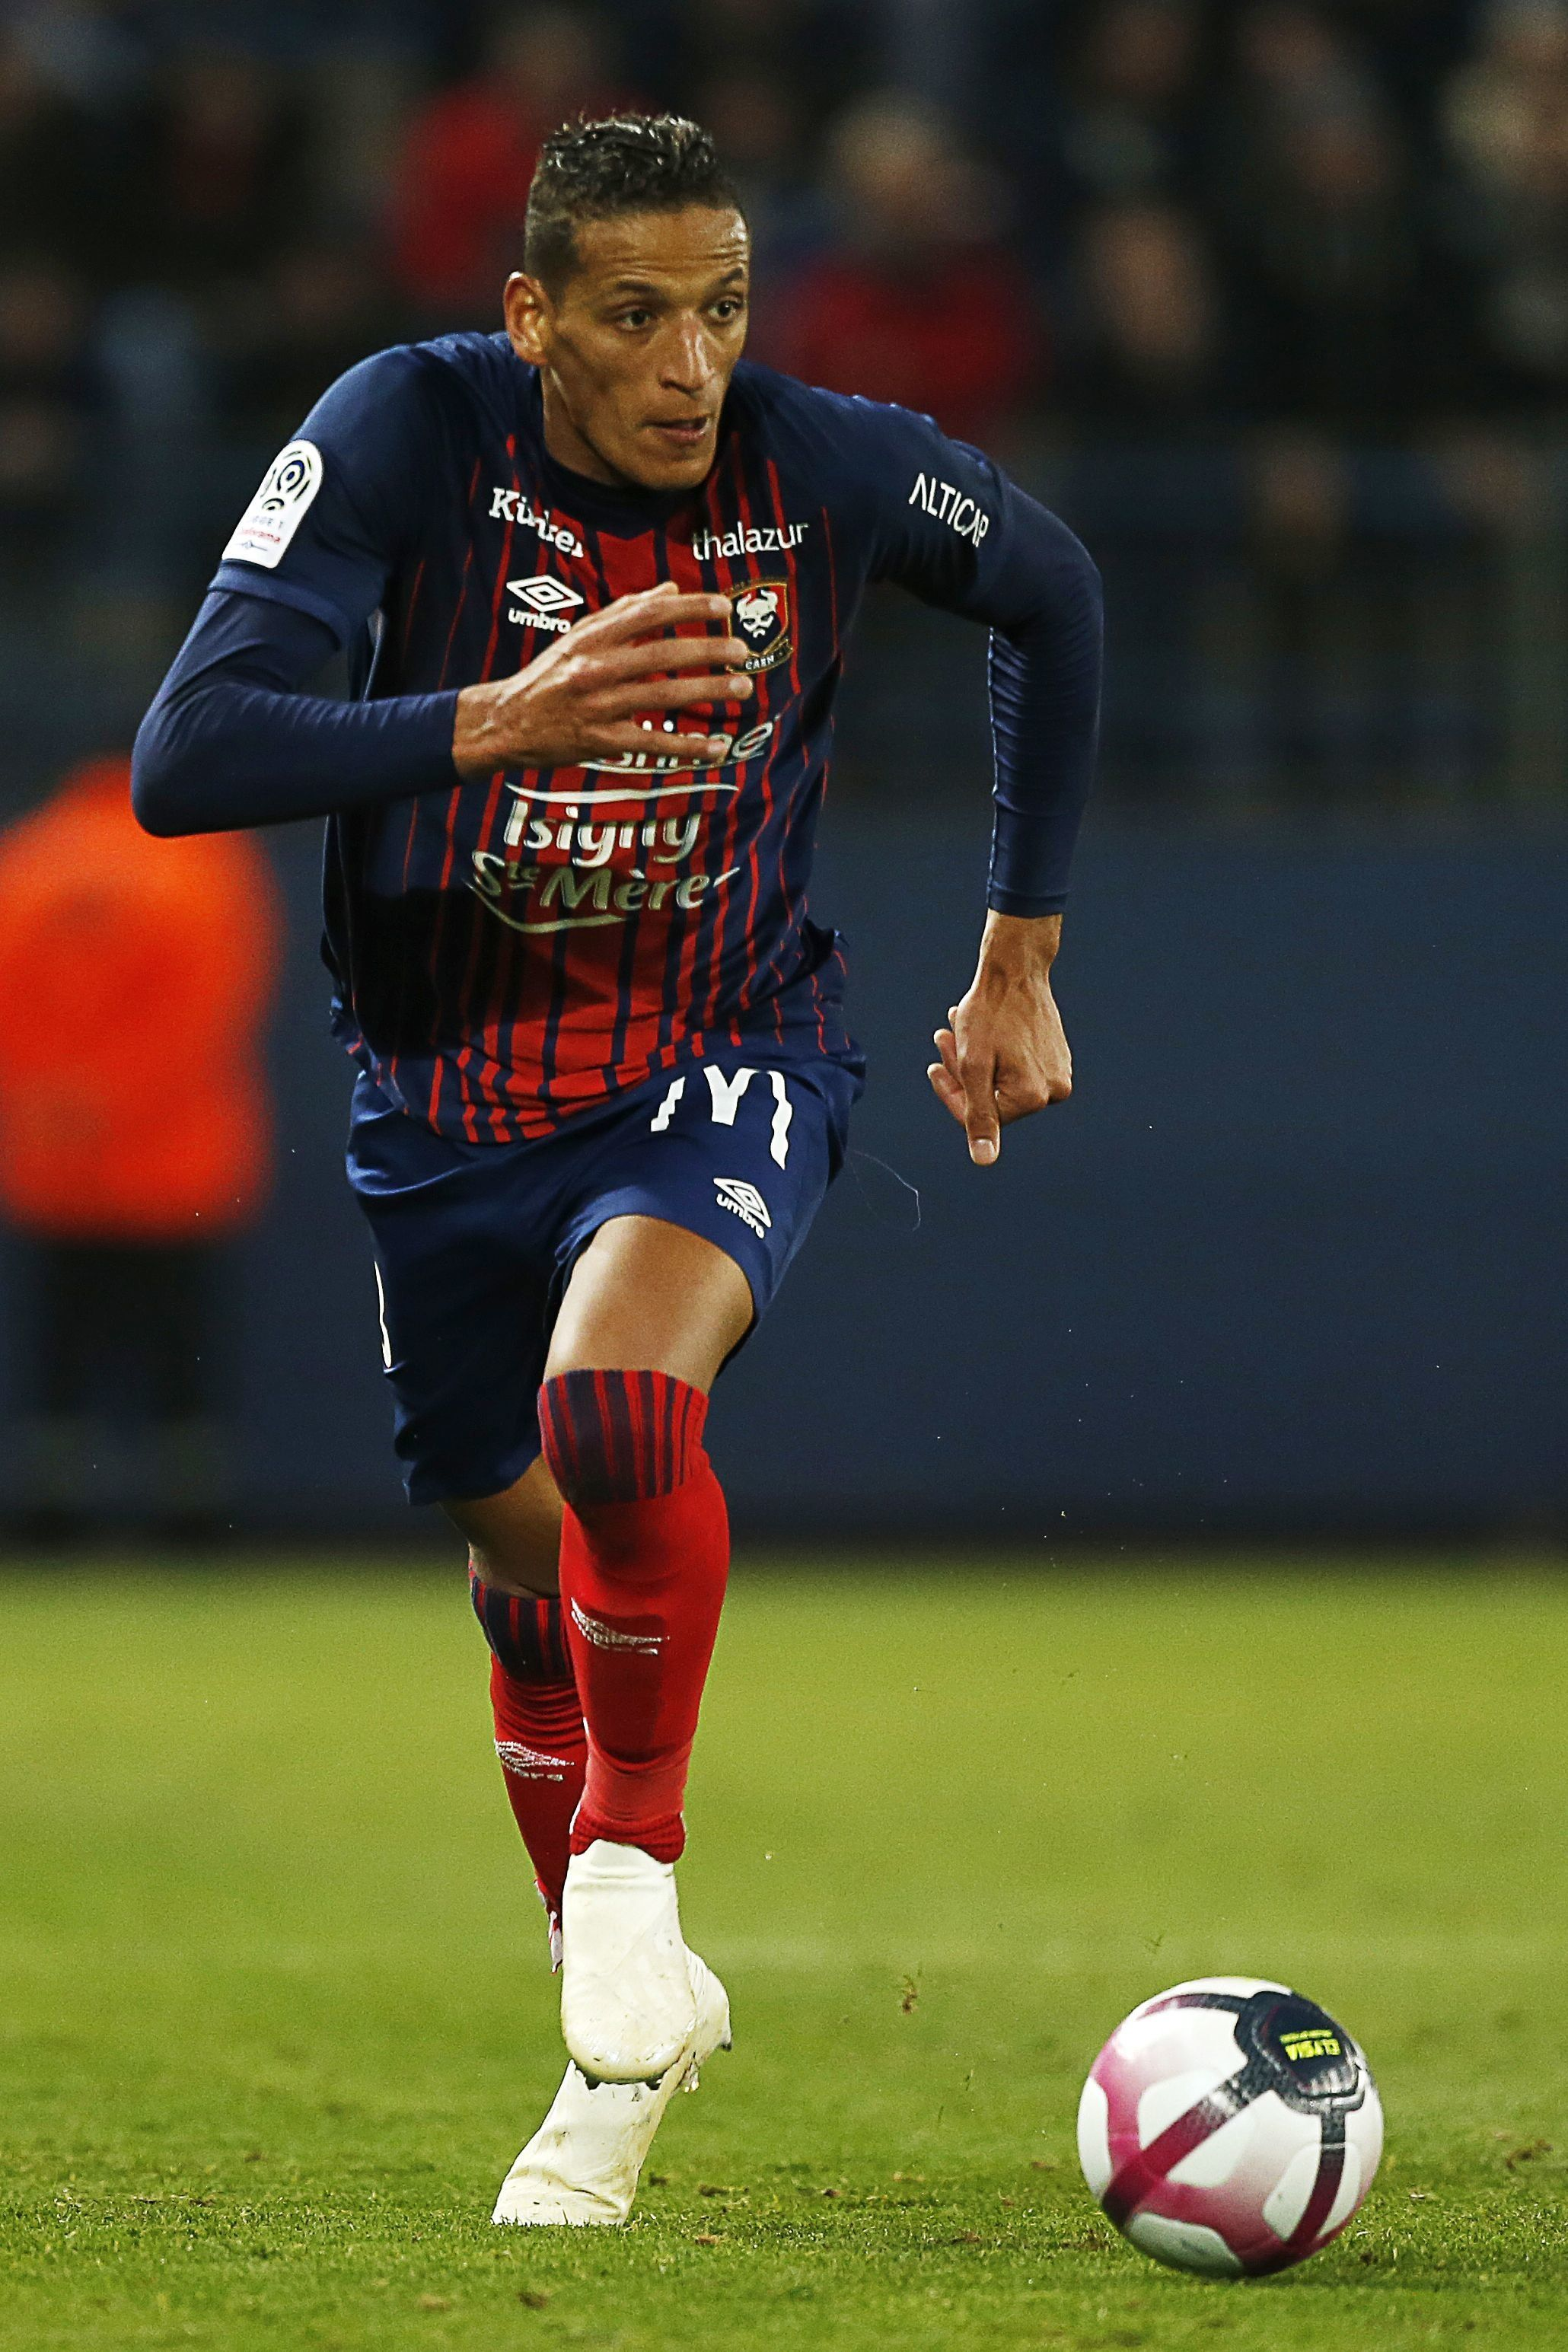 En Coupe de France, Yacine Bammou dédie son but à Emiliano